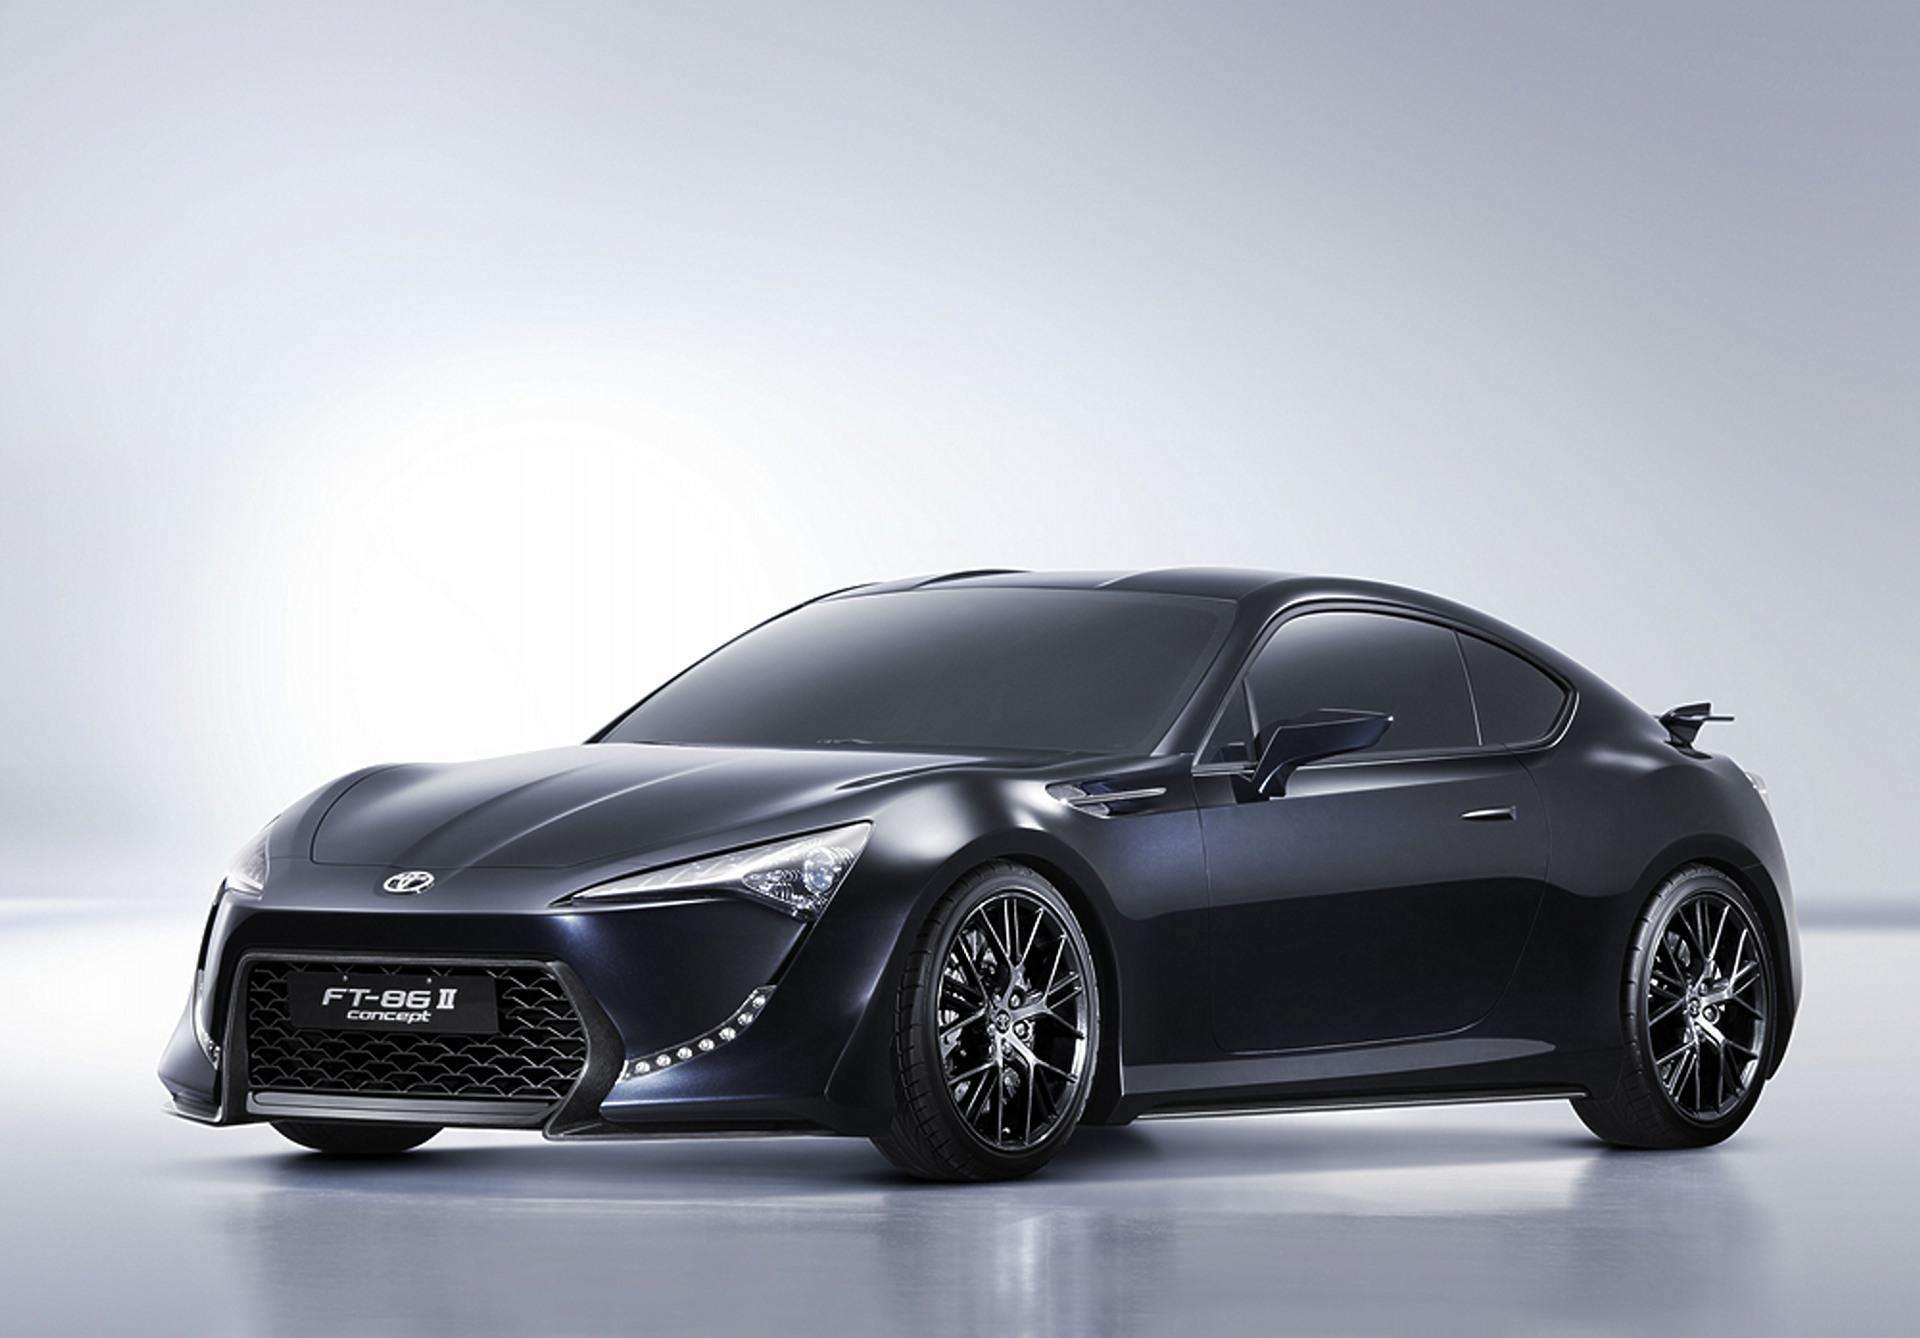 New Toyota Sports Car ft 86 2011 Toyota Ft-86 ii Concept